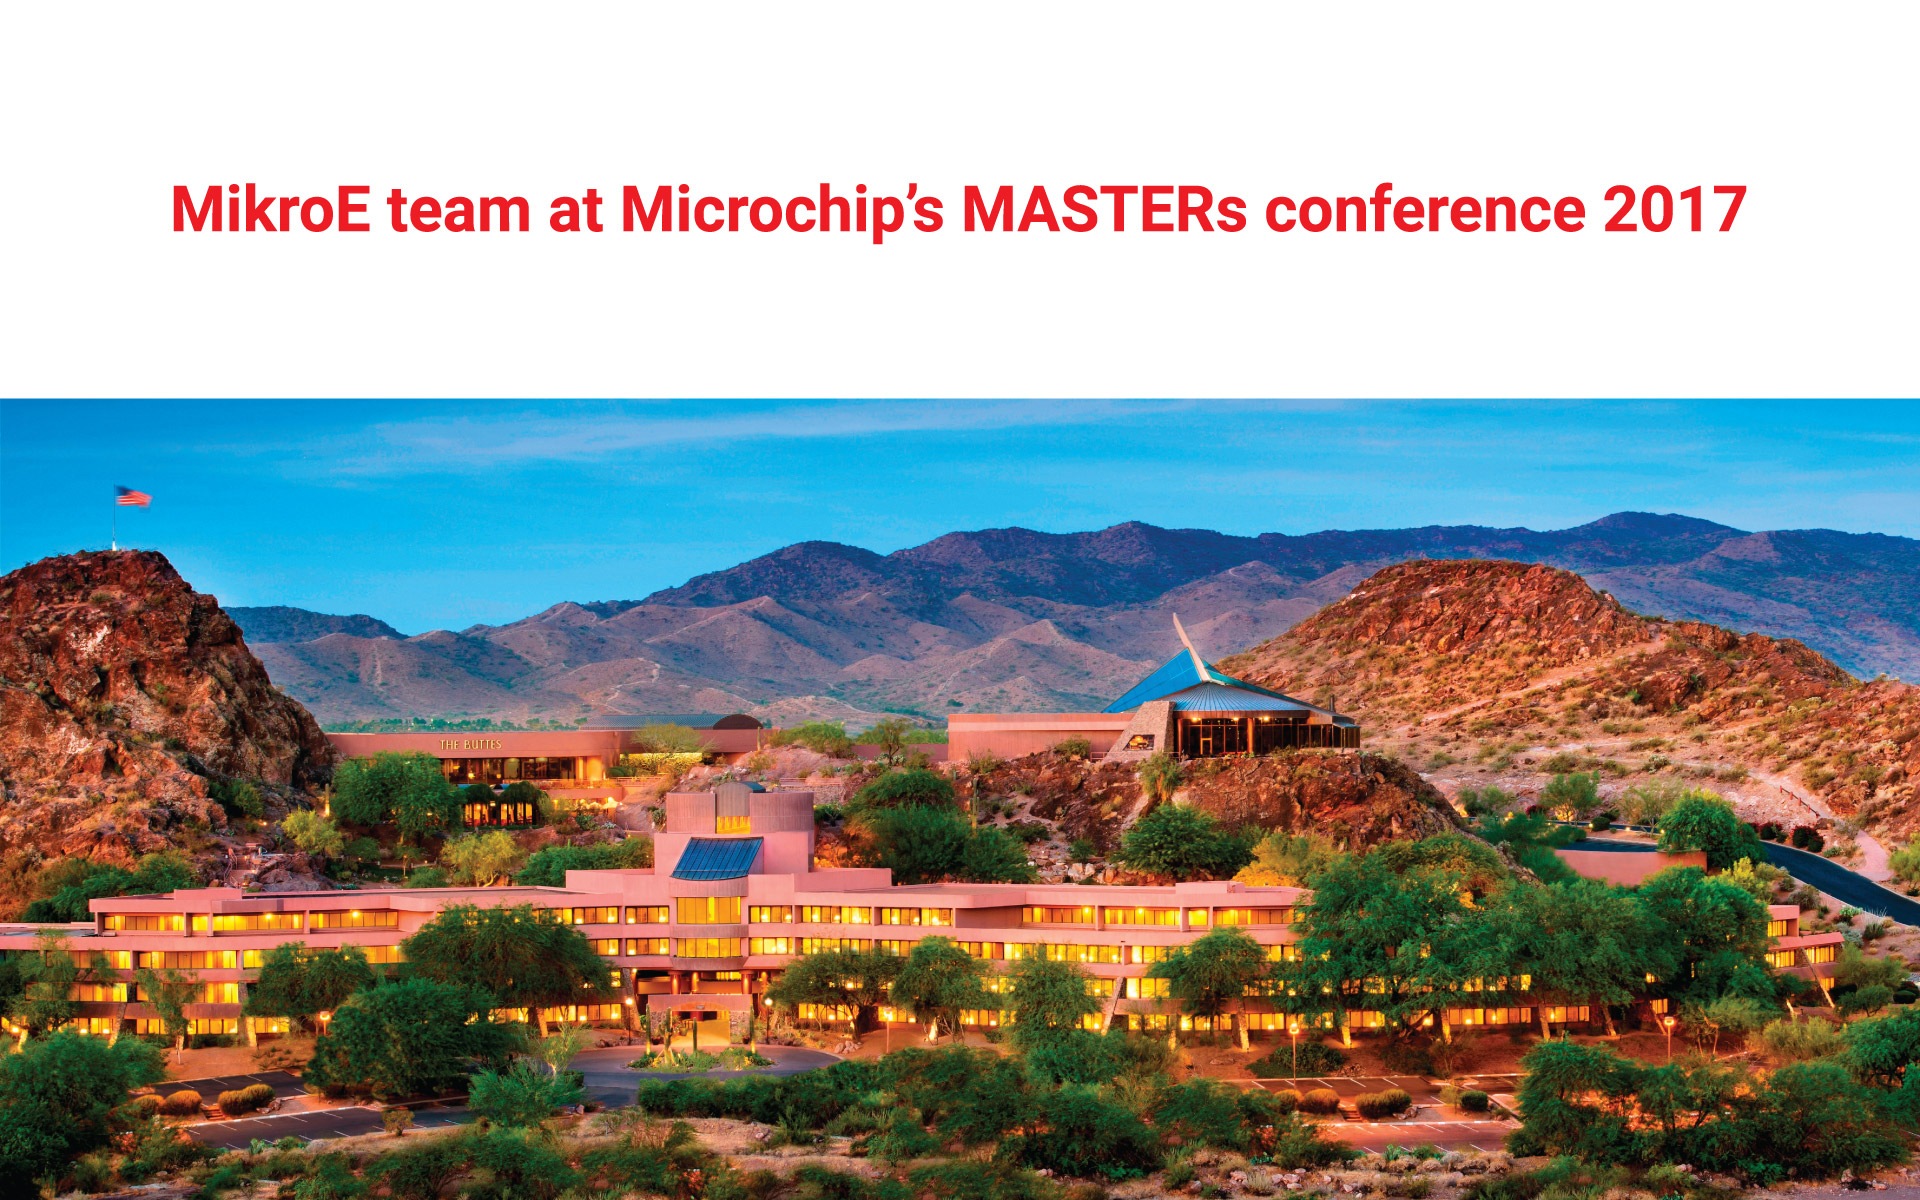 MikroE team at Microchip's MASTERs 2017 - part 1